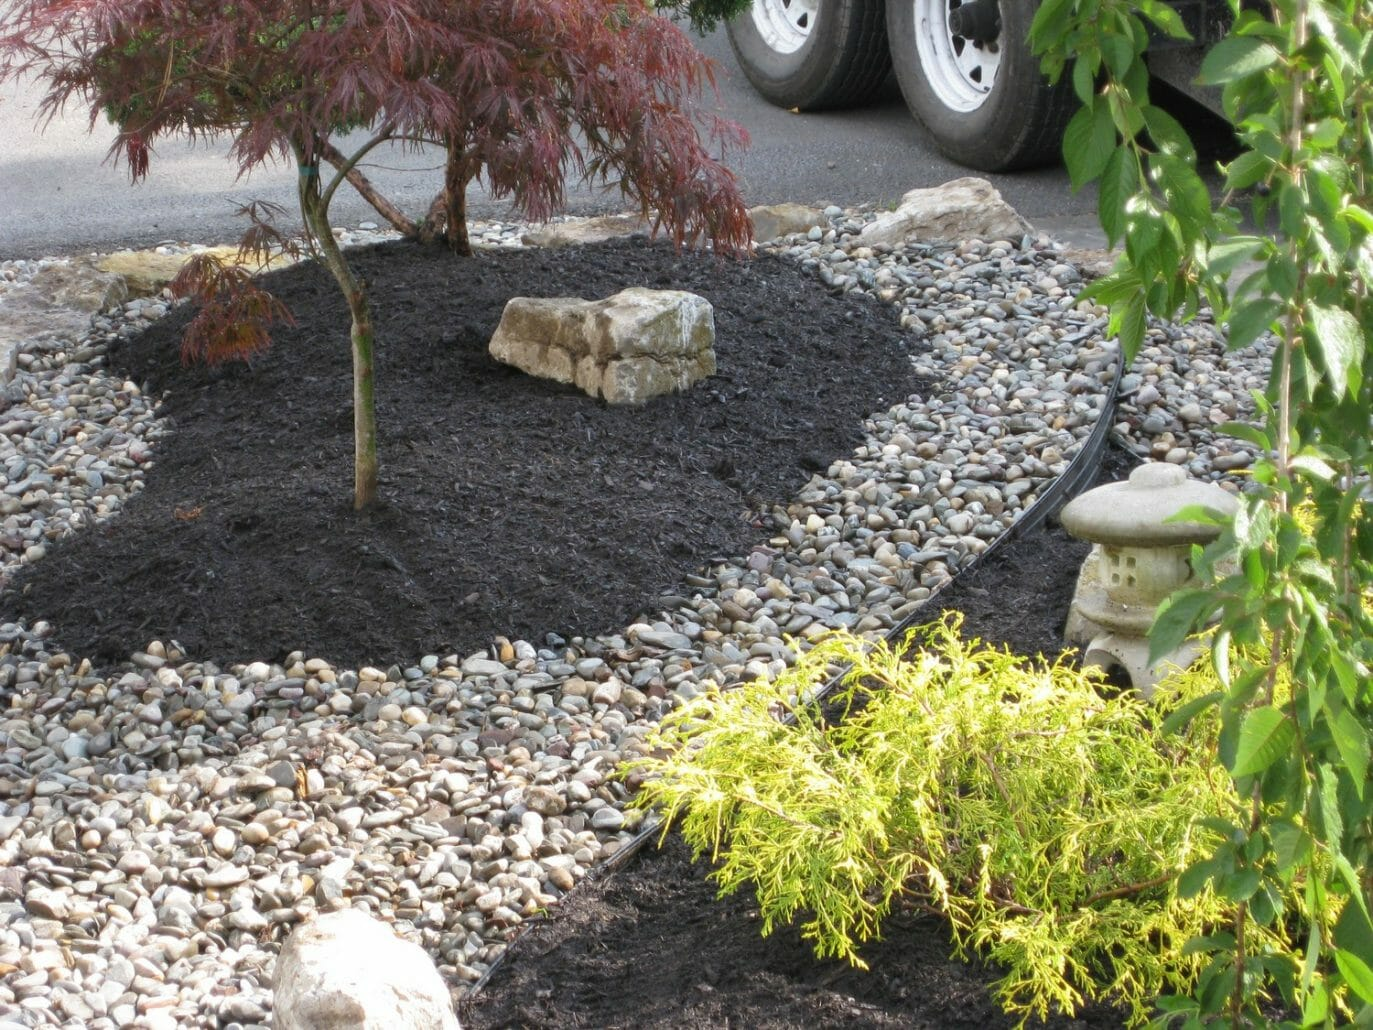 Albany NY landscaping garden design rocks 1373x1030 - Landscape Plan Installation and Project Management